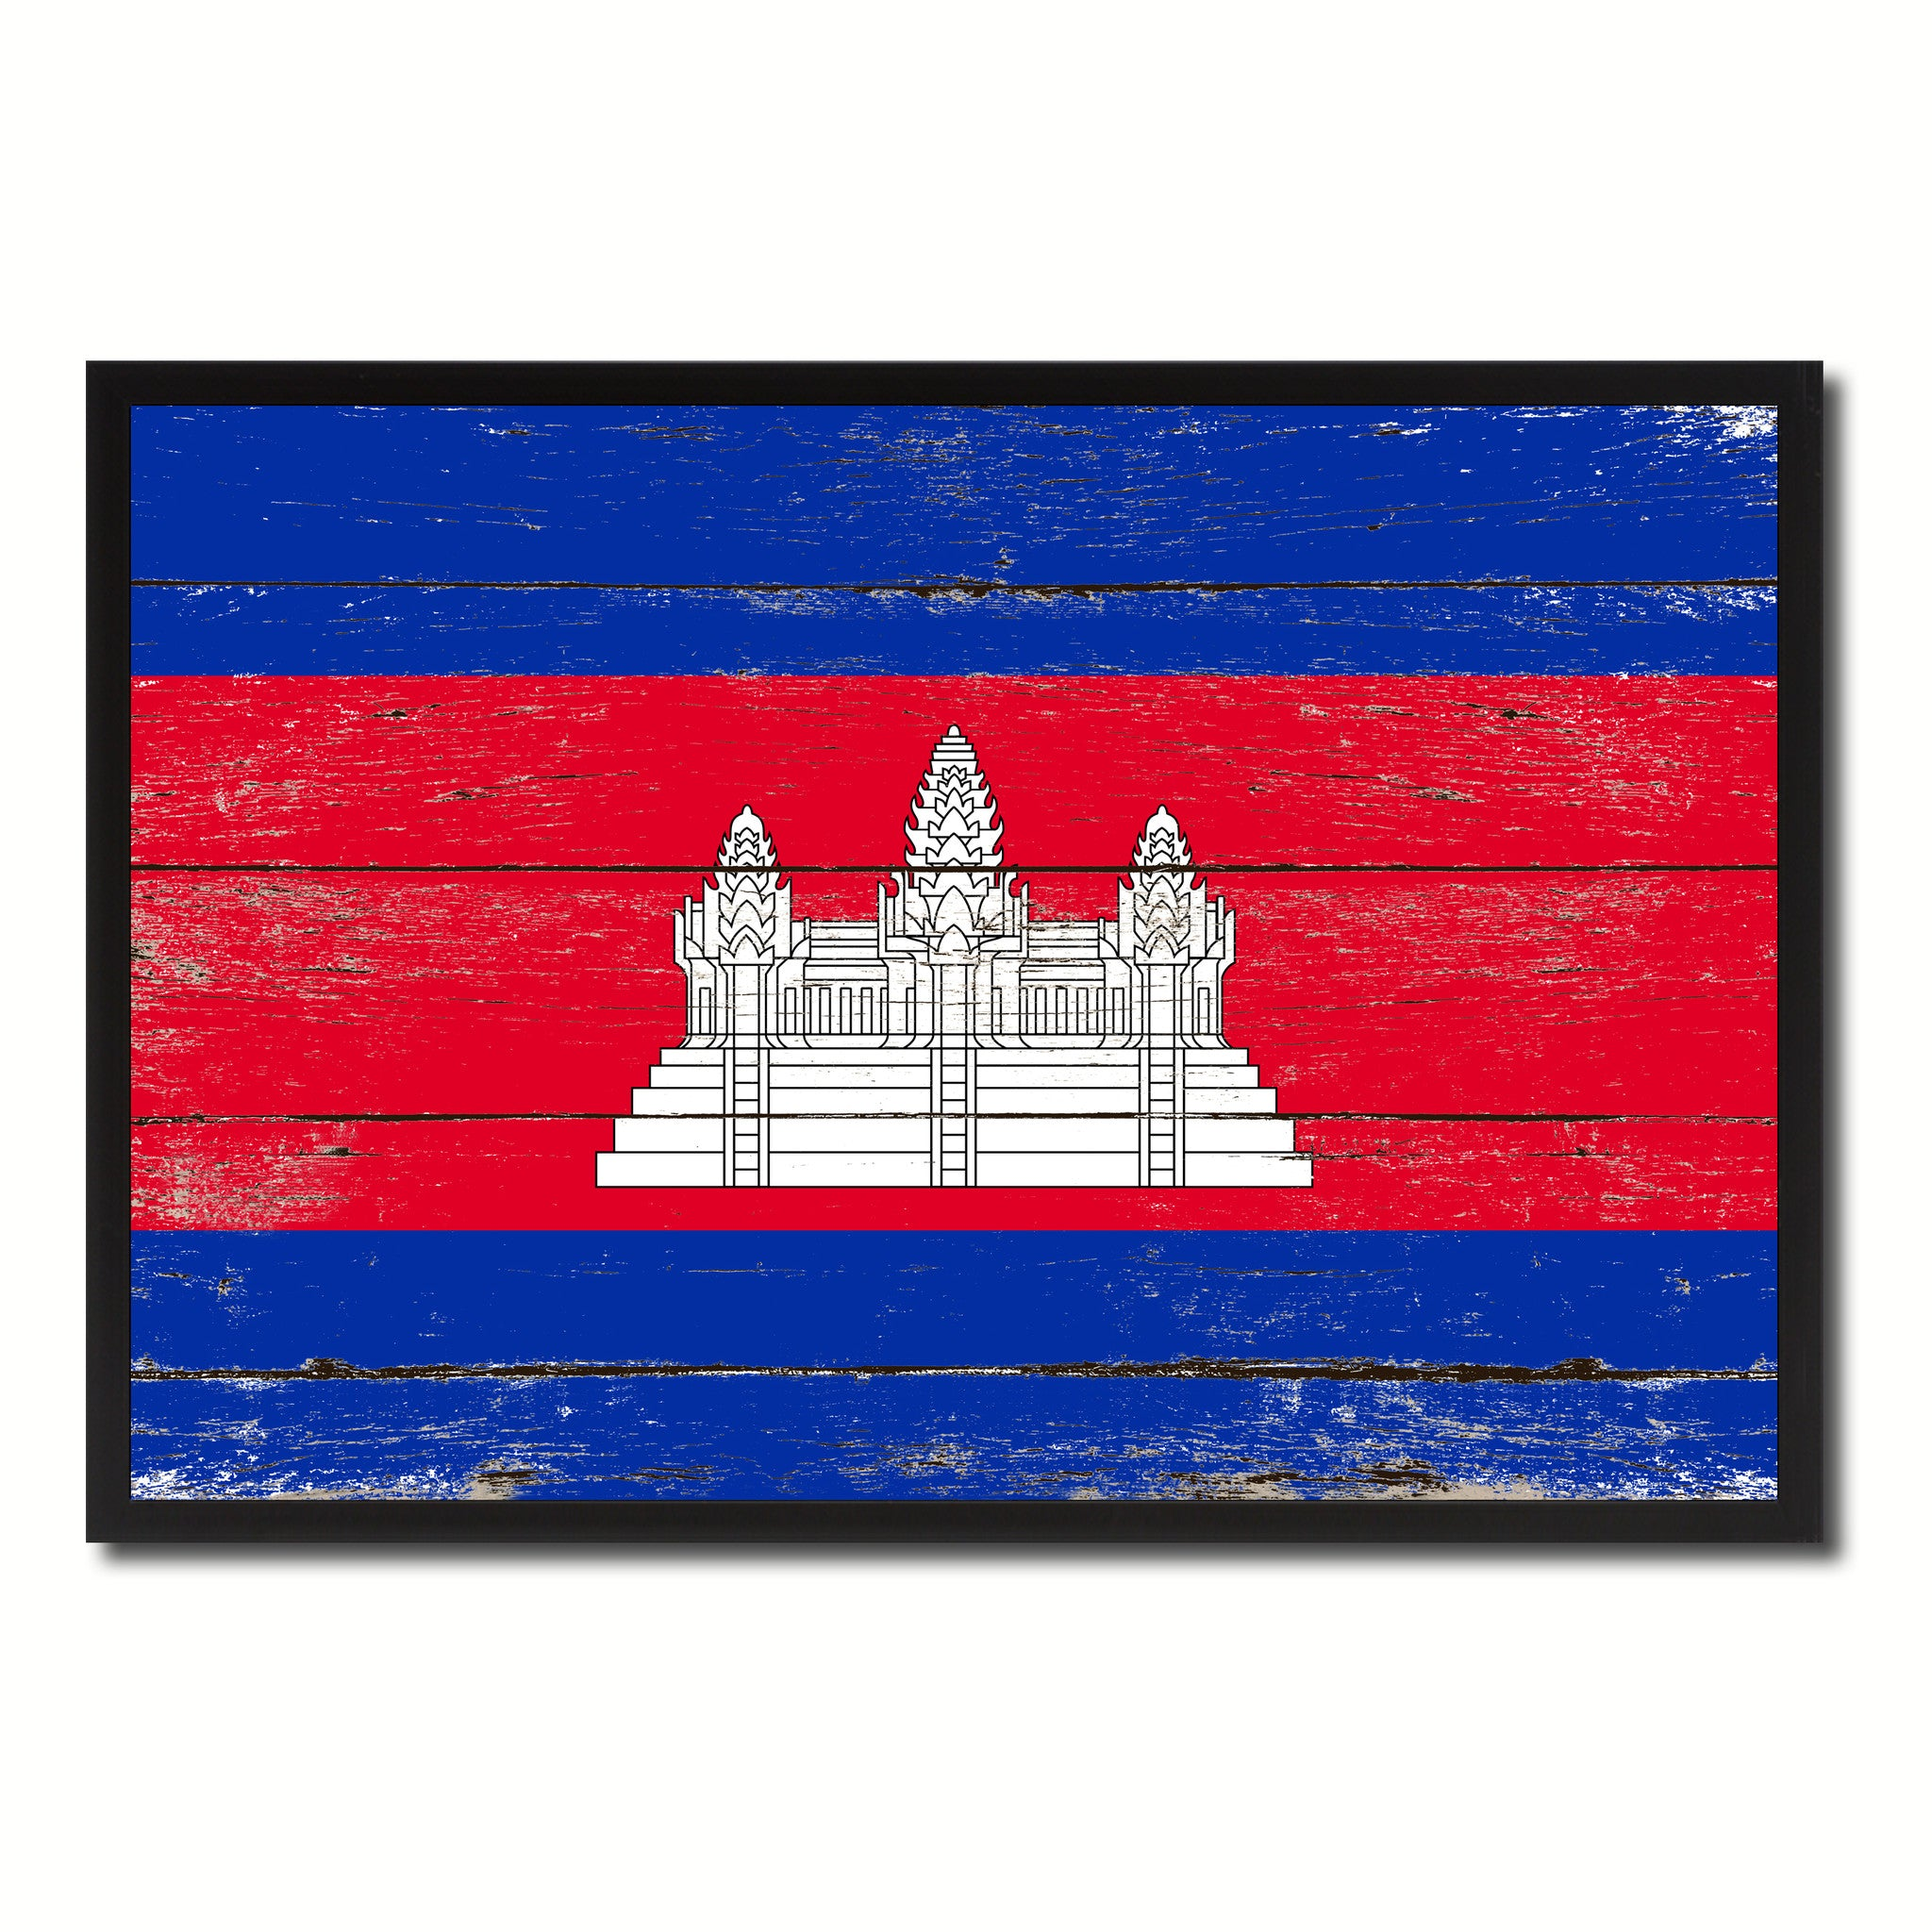 Cambodia Country National Flag Vintage Canvas Print with Picture Frame Home Decor Wall Art Collection Gift Ideas